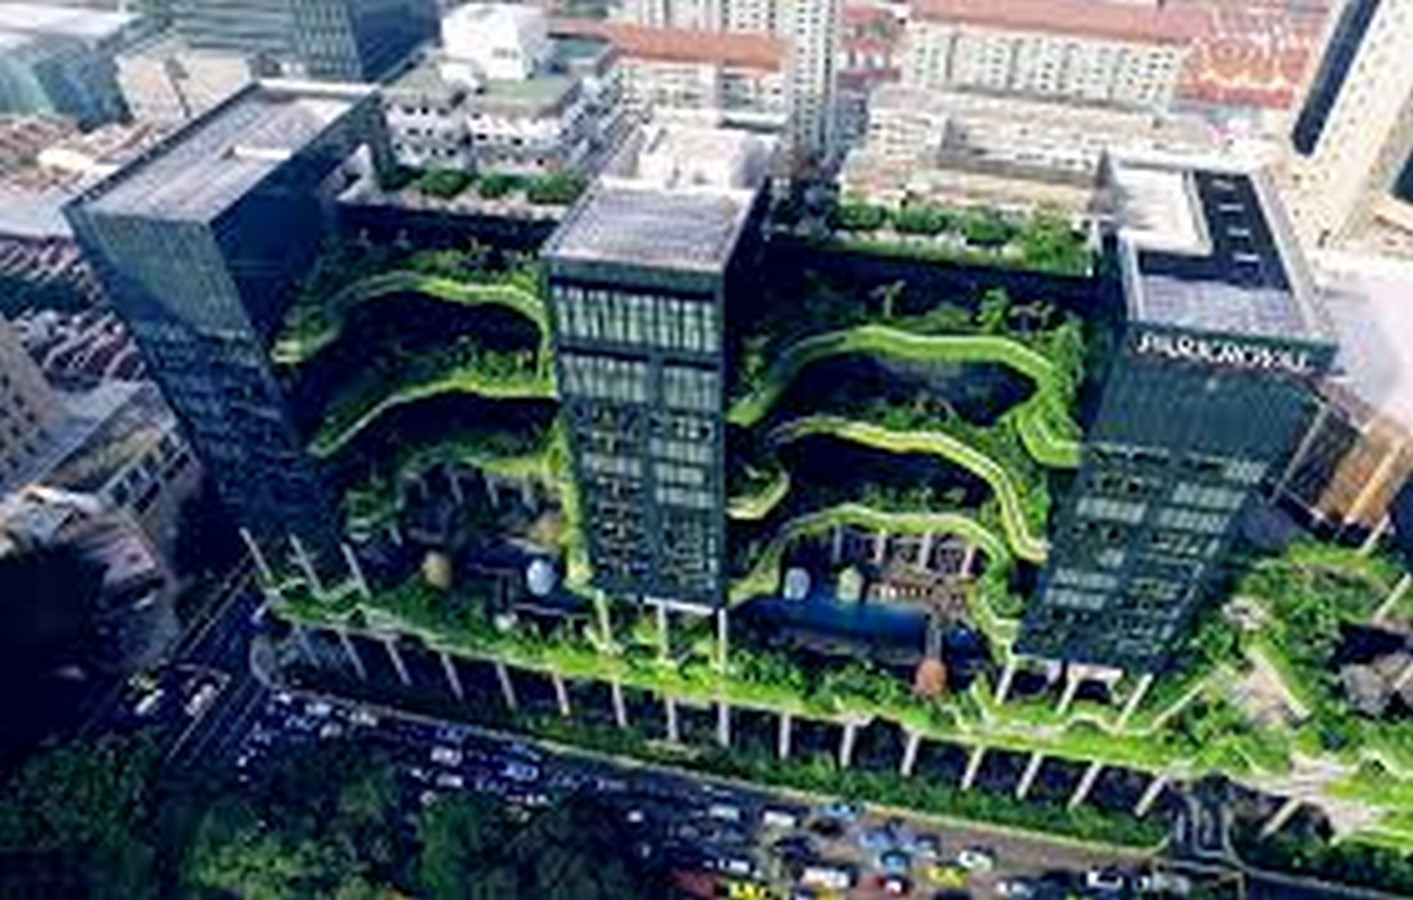 ParkRoyal Hotel Pickering in Singapore by WOHA-Complexity in Architecture - Sheet1